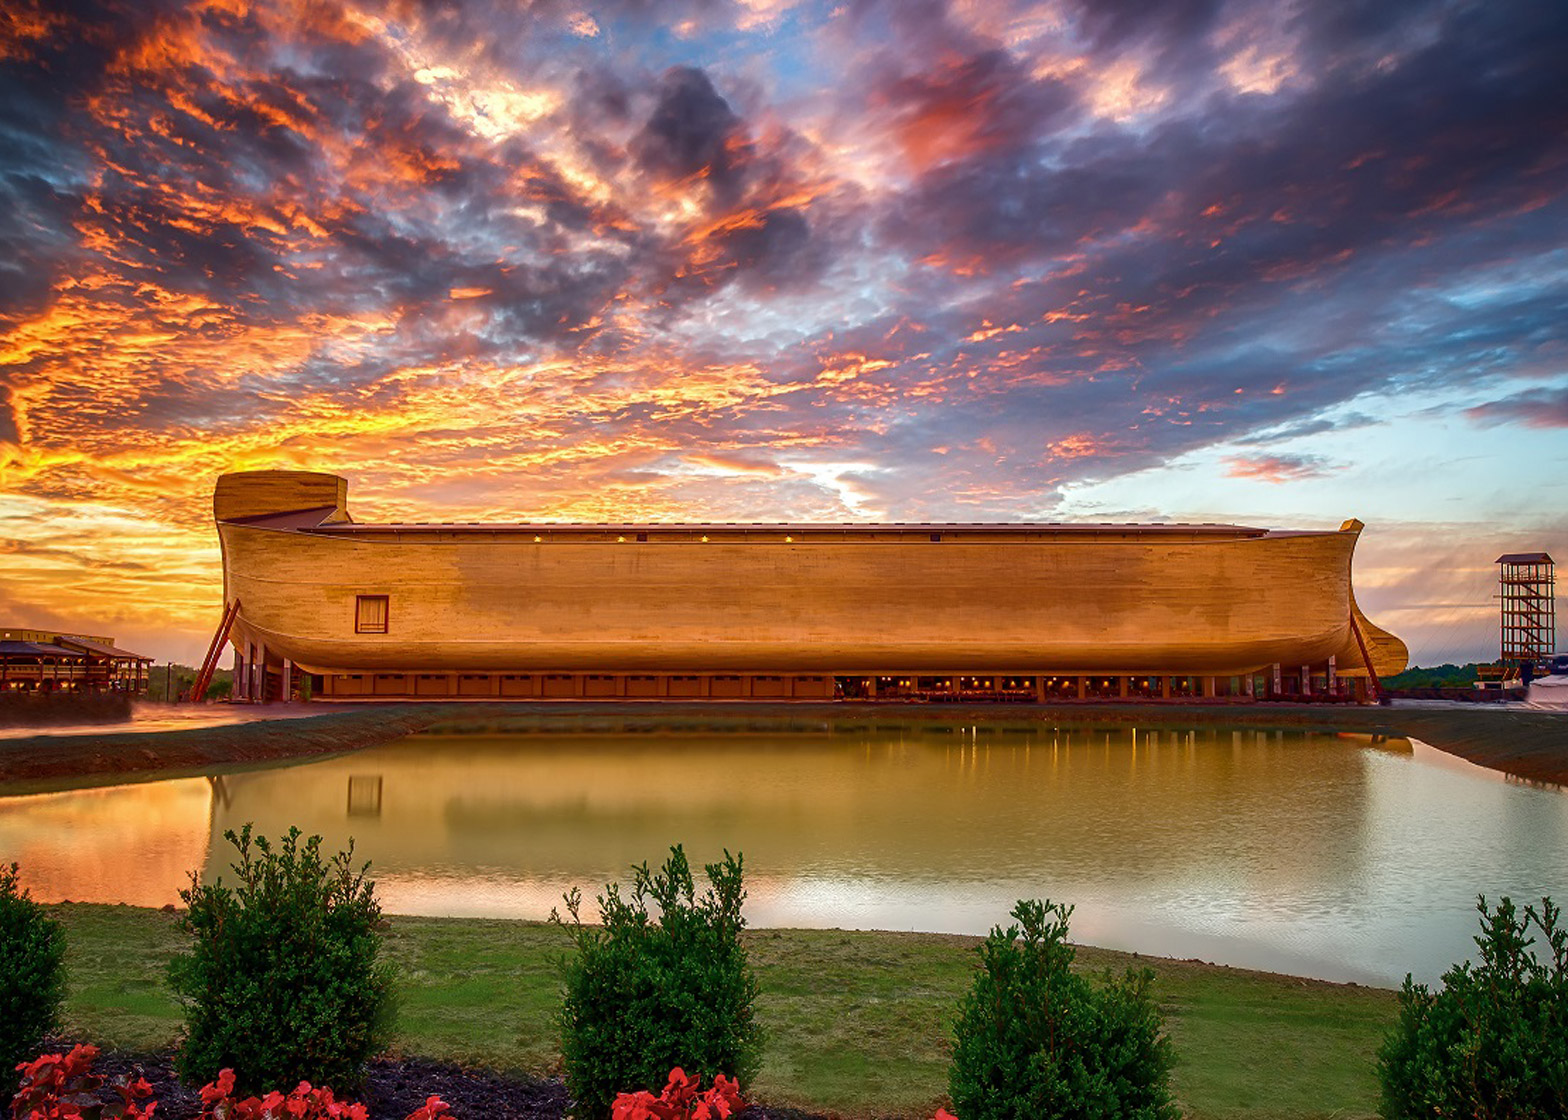 11 Of Troyer Group Opens Noahs Ark Theme Park In Kentucky As Flash Floods Hit The State